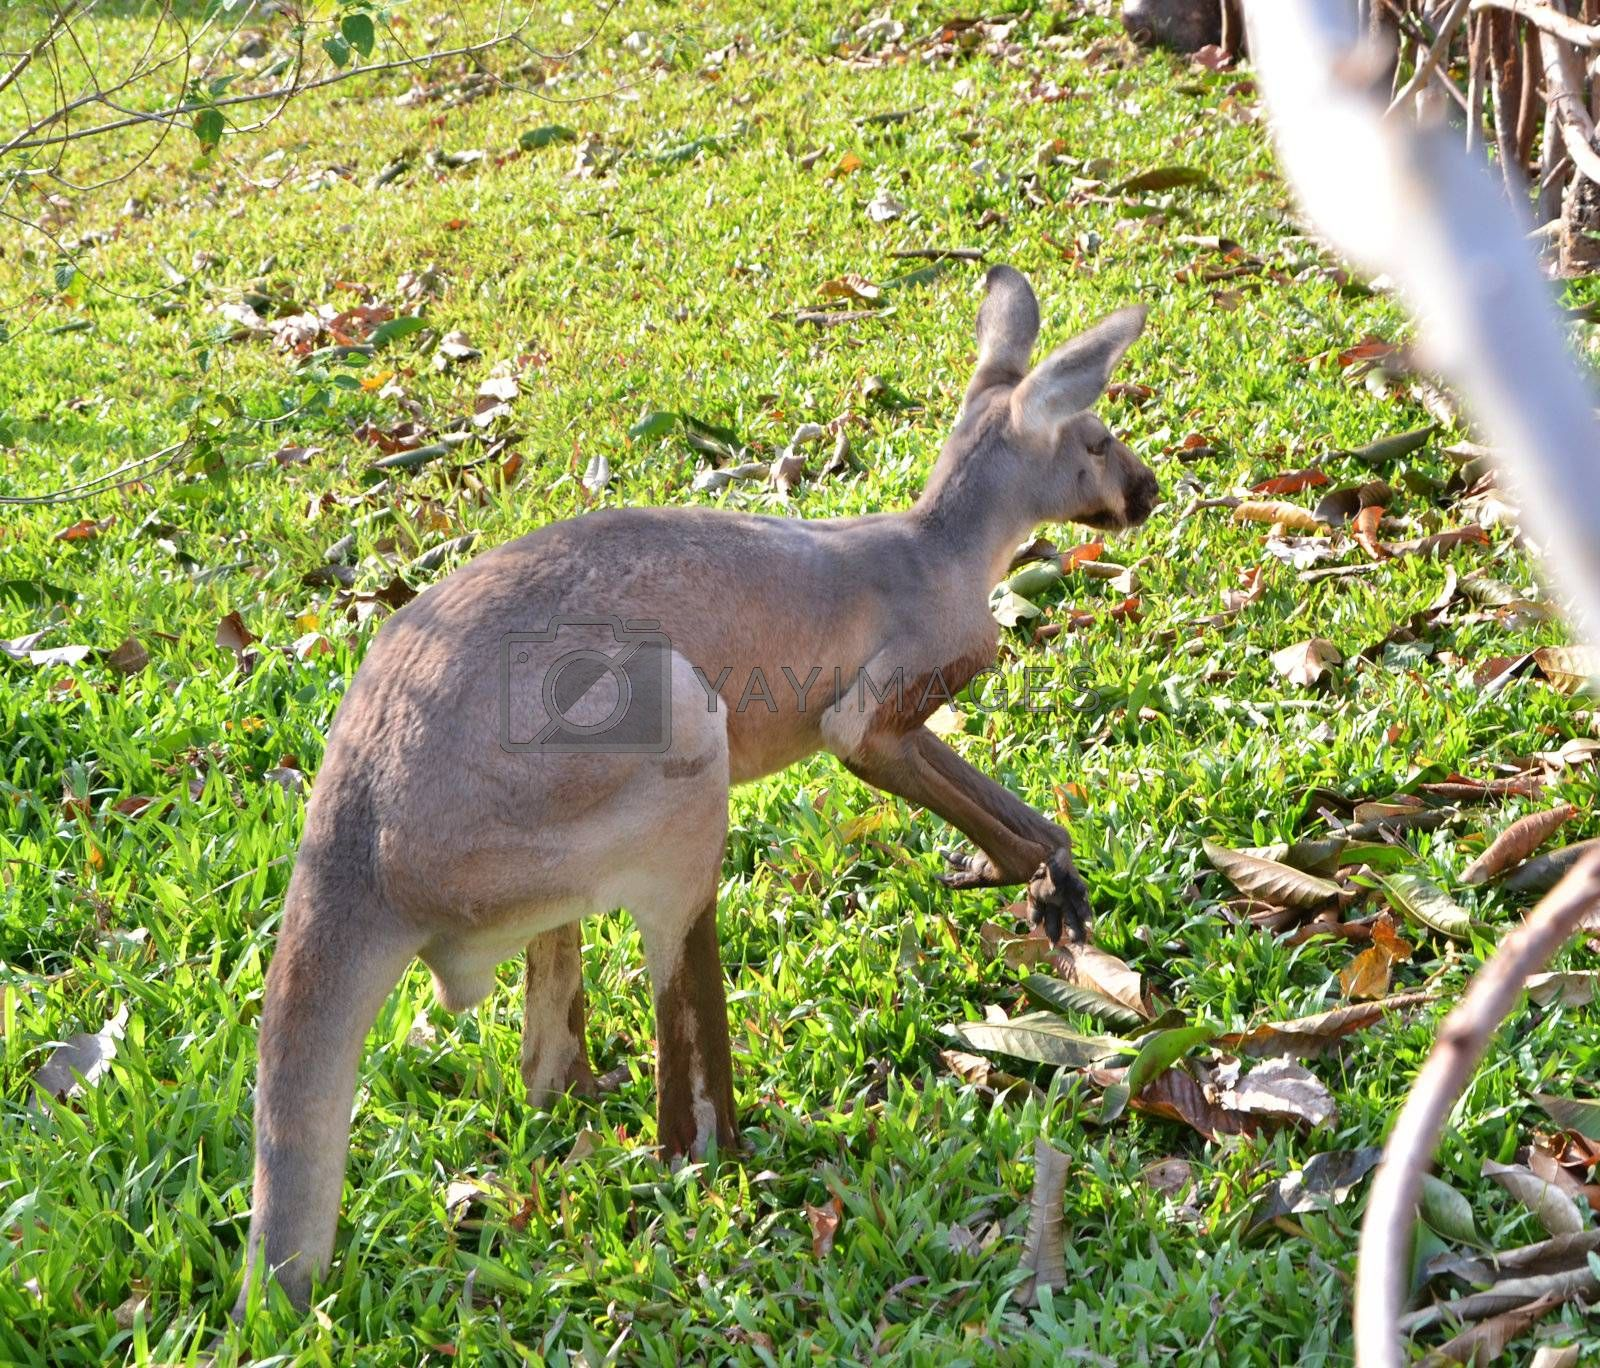 Young kangaroo in a thailand zoo